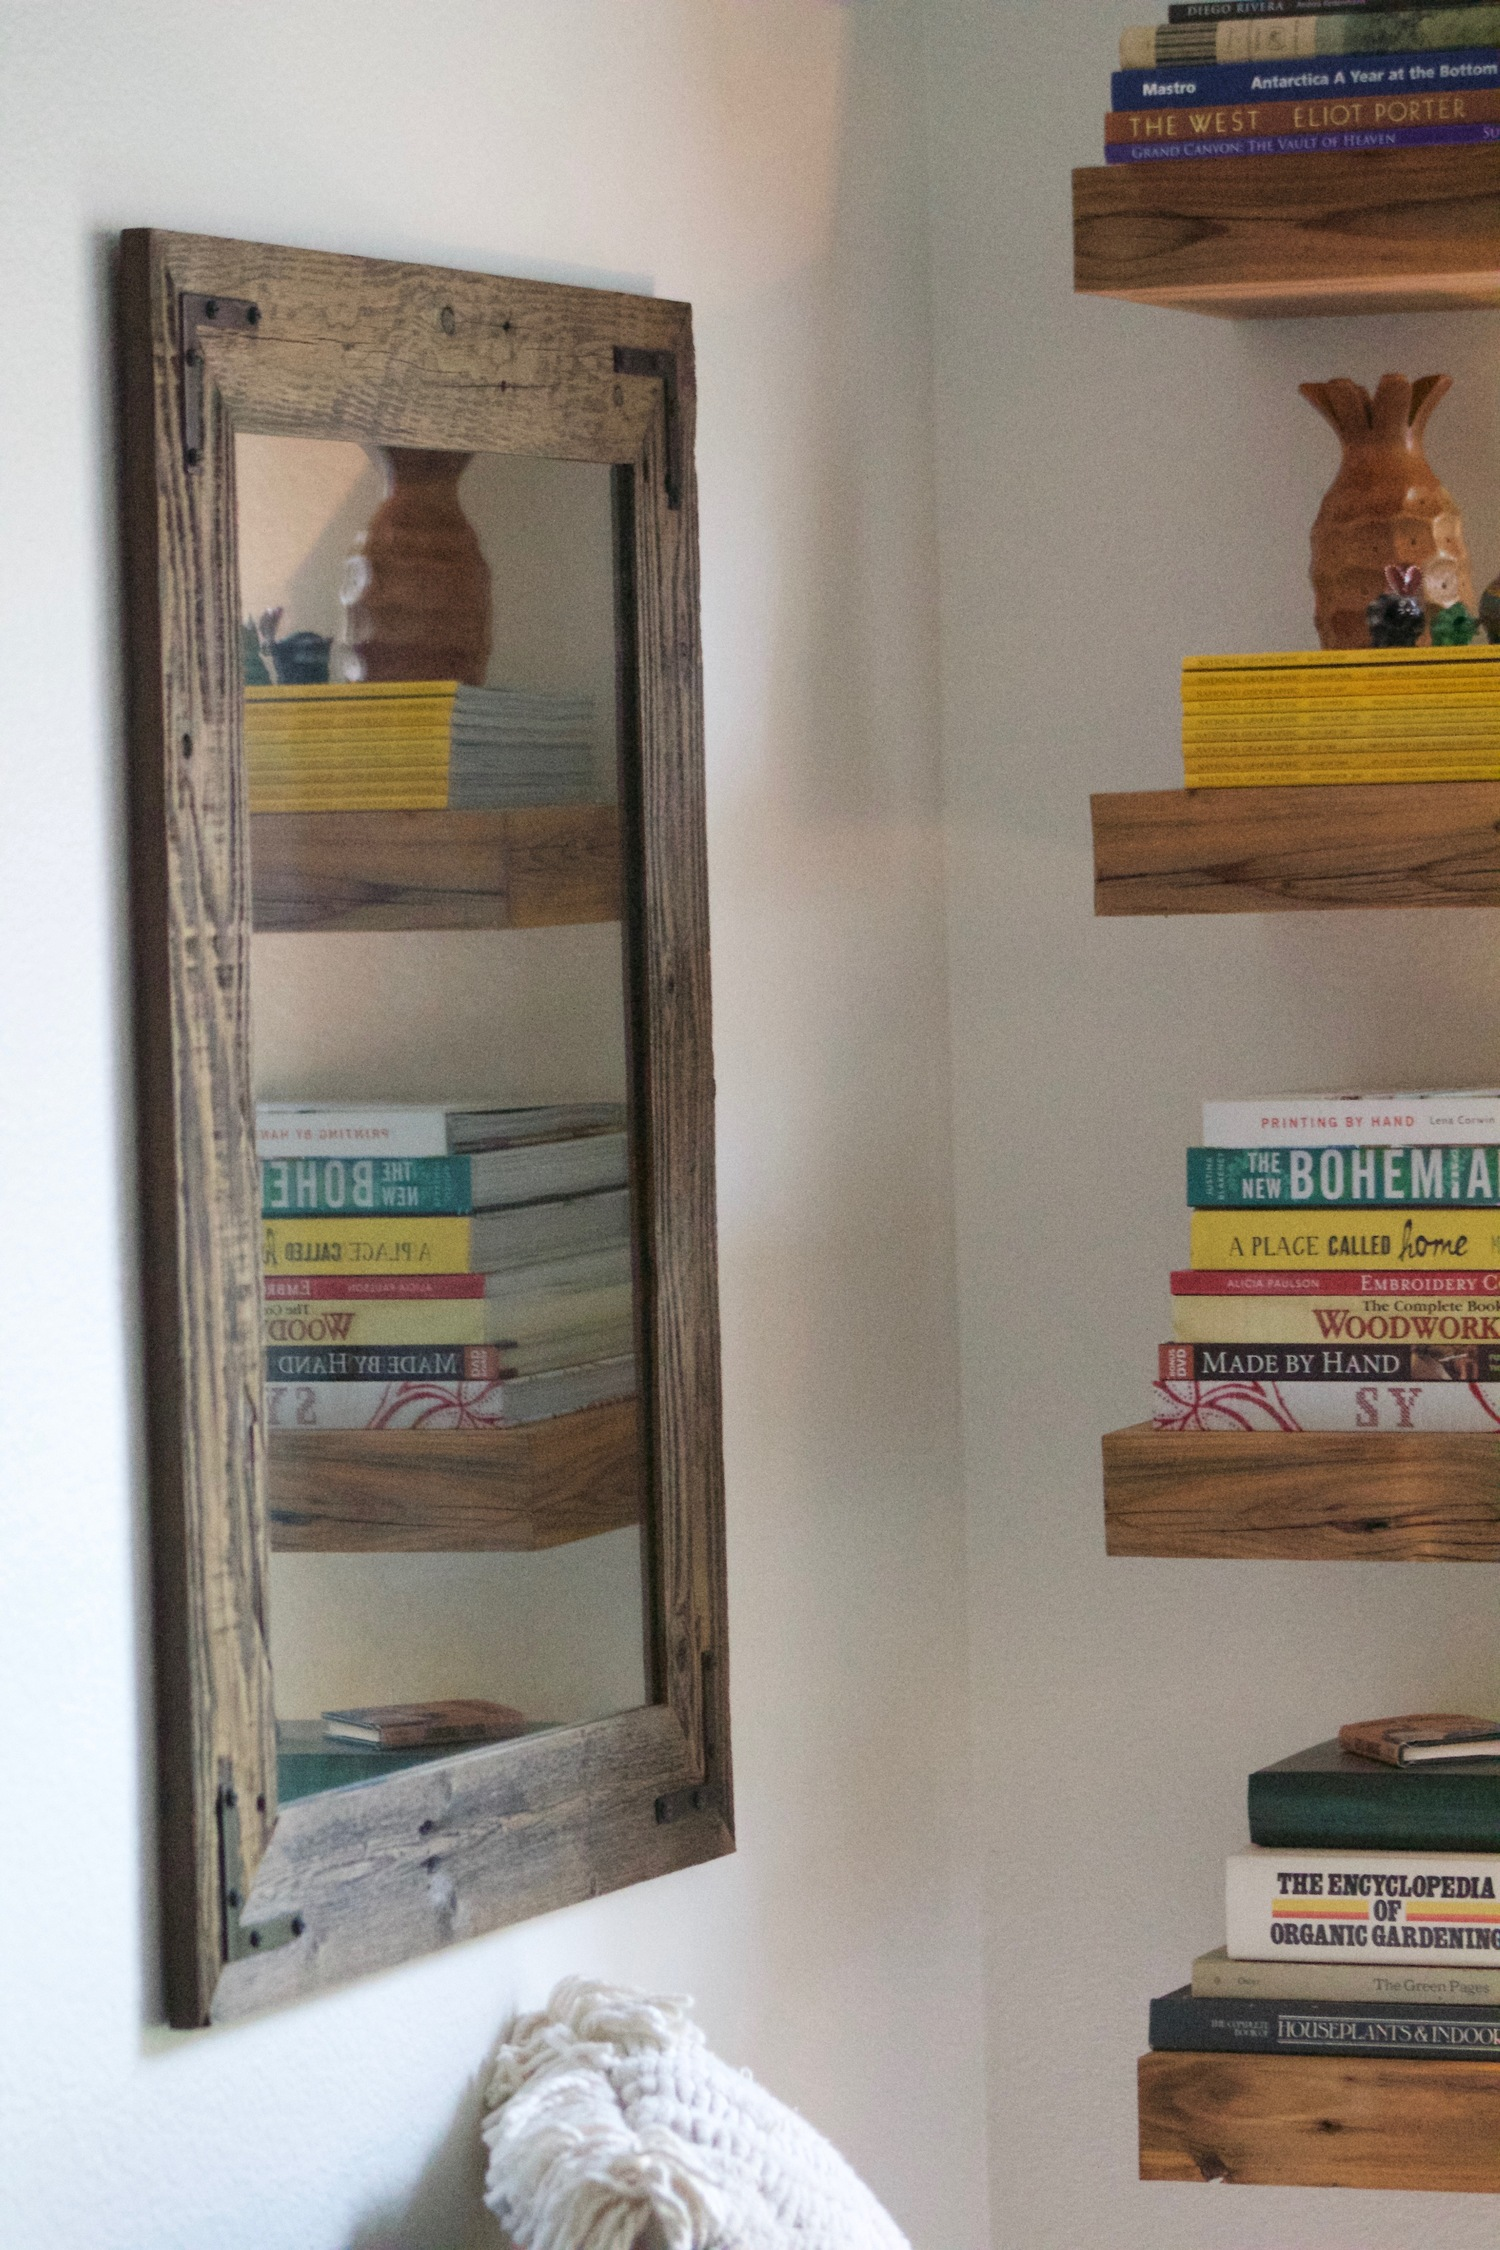 24 x 30 Framed Mirror Handcrafted With Reclaimed Wood - 24 X 30 Framed Mirror Handcrafted With Reclaimed Wood €� Hurd & Honey